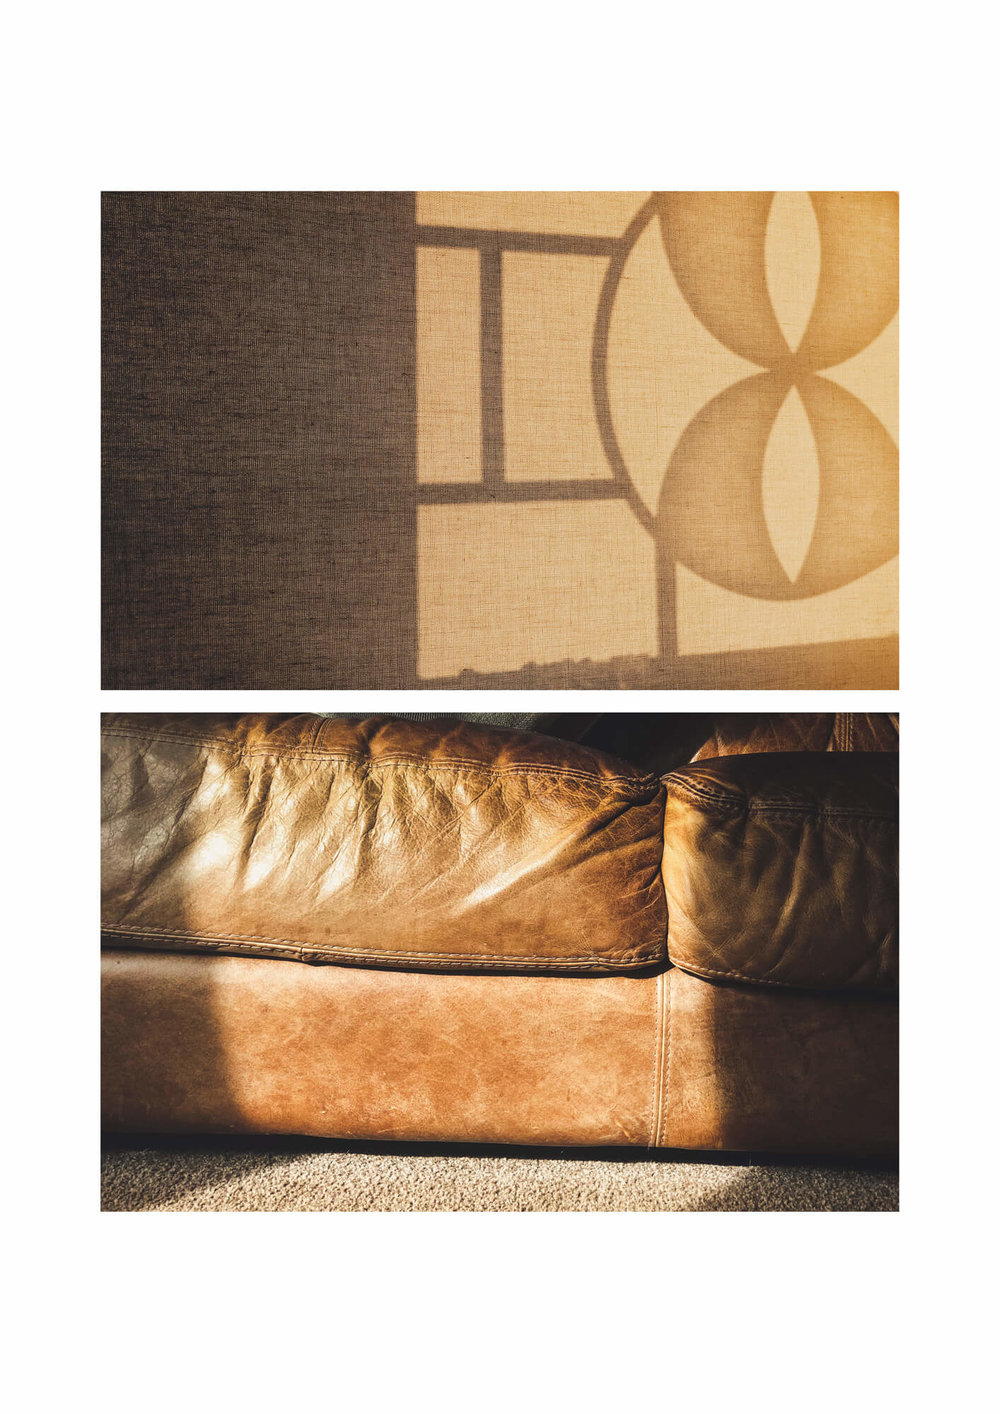 brown leather sofa with sunlight on it